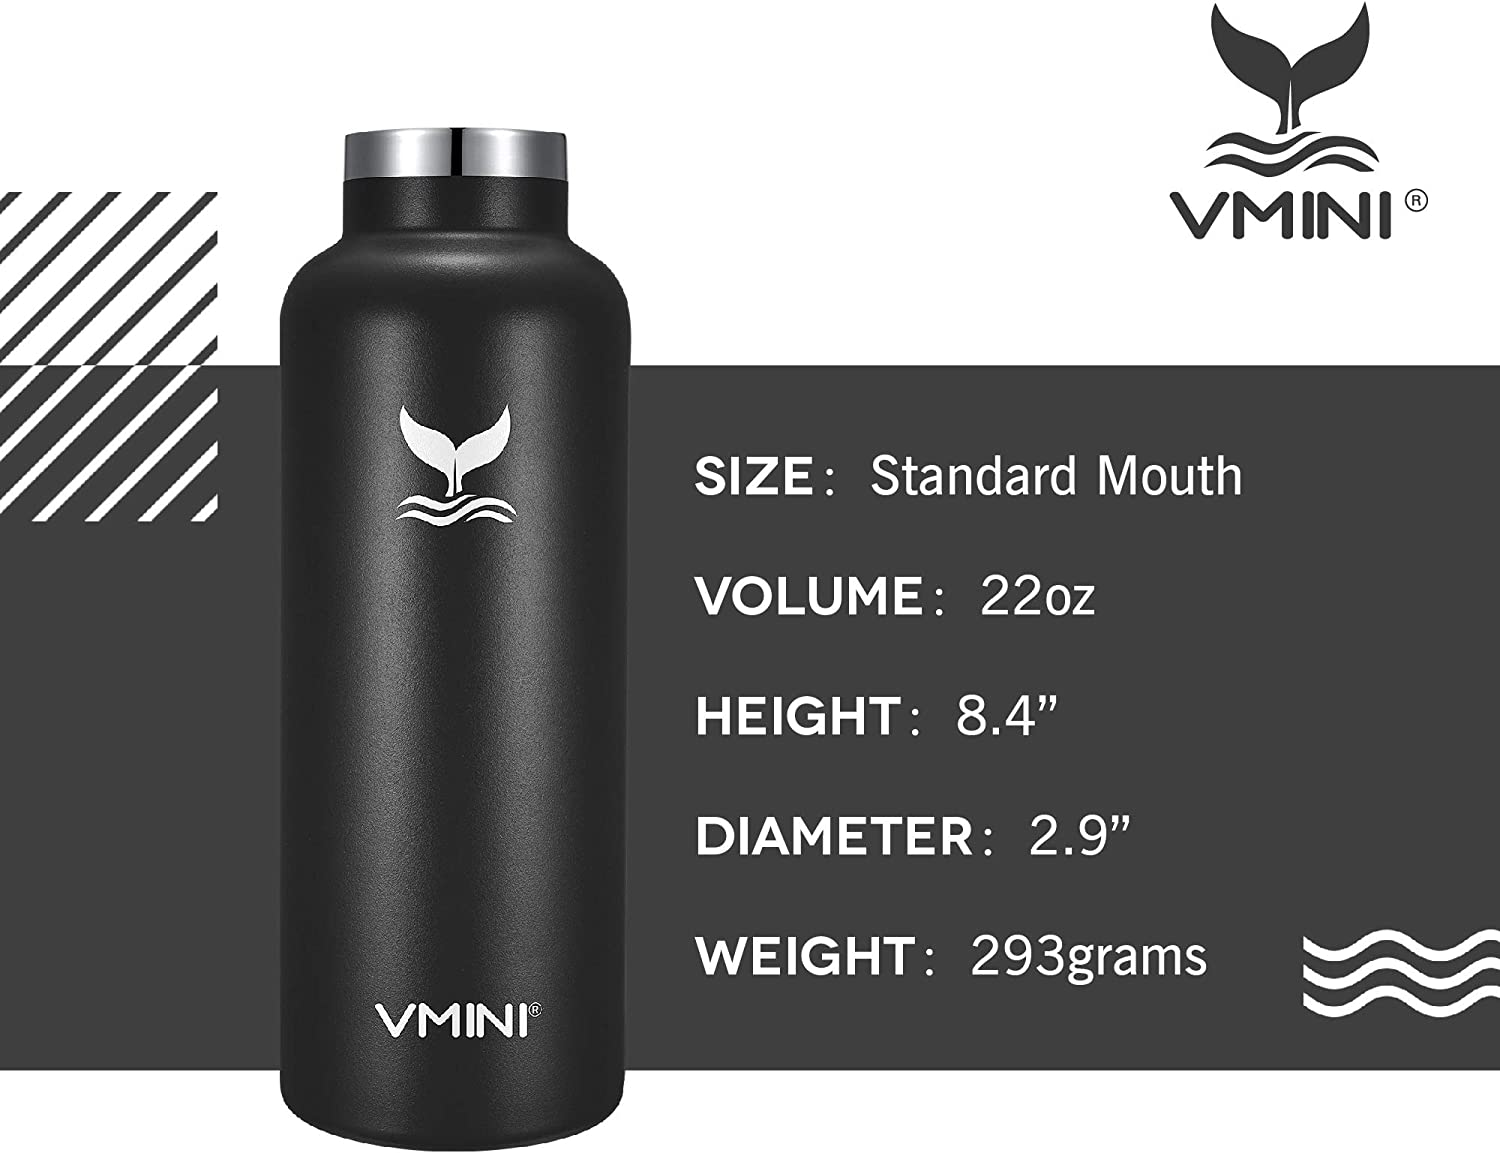 New Straw Lid with Wide Handle Vmini Water Bottle Gradient Yellow+Pink /& 22 oz Standard Mouth Stainless Steel /& Vacuum Insulated Bottle